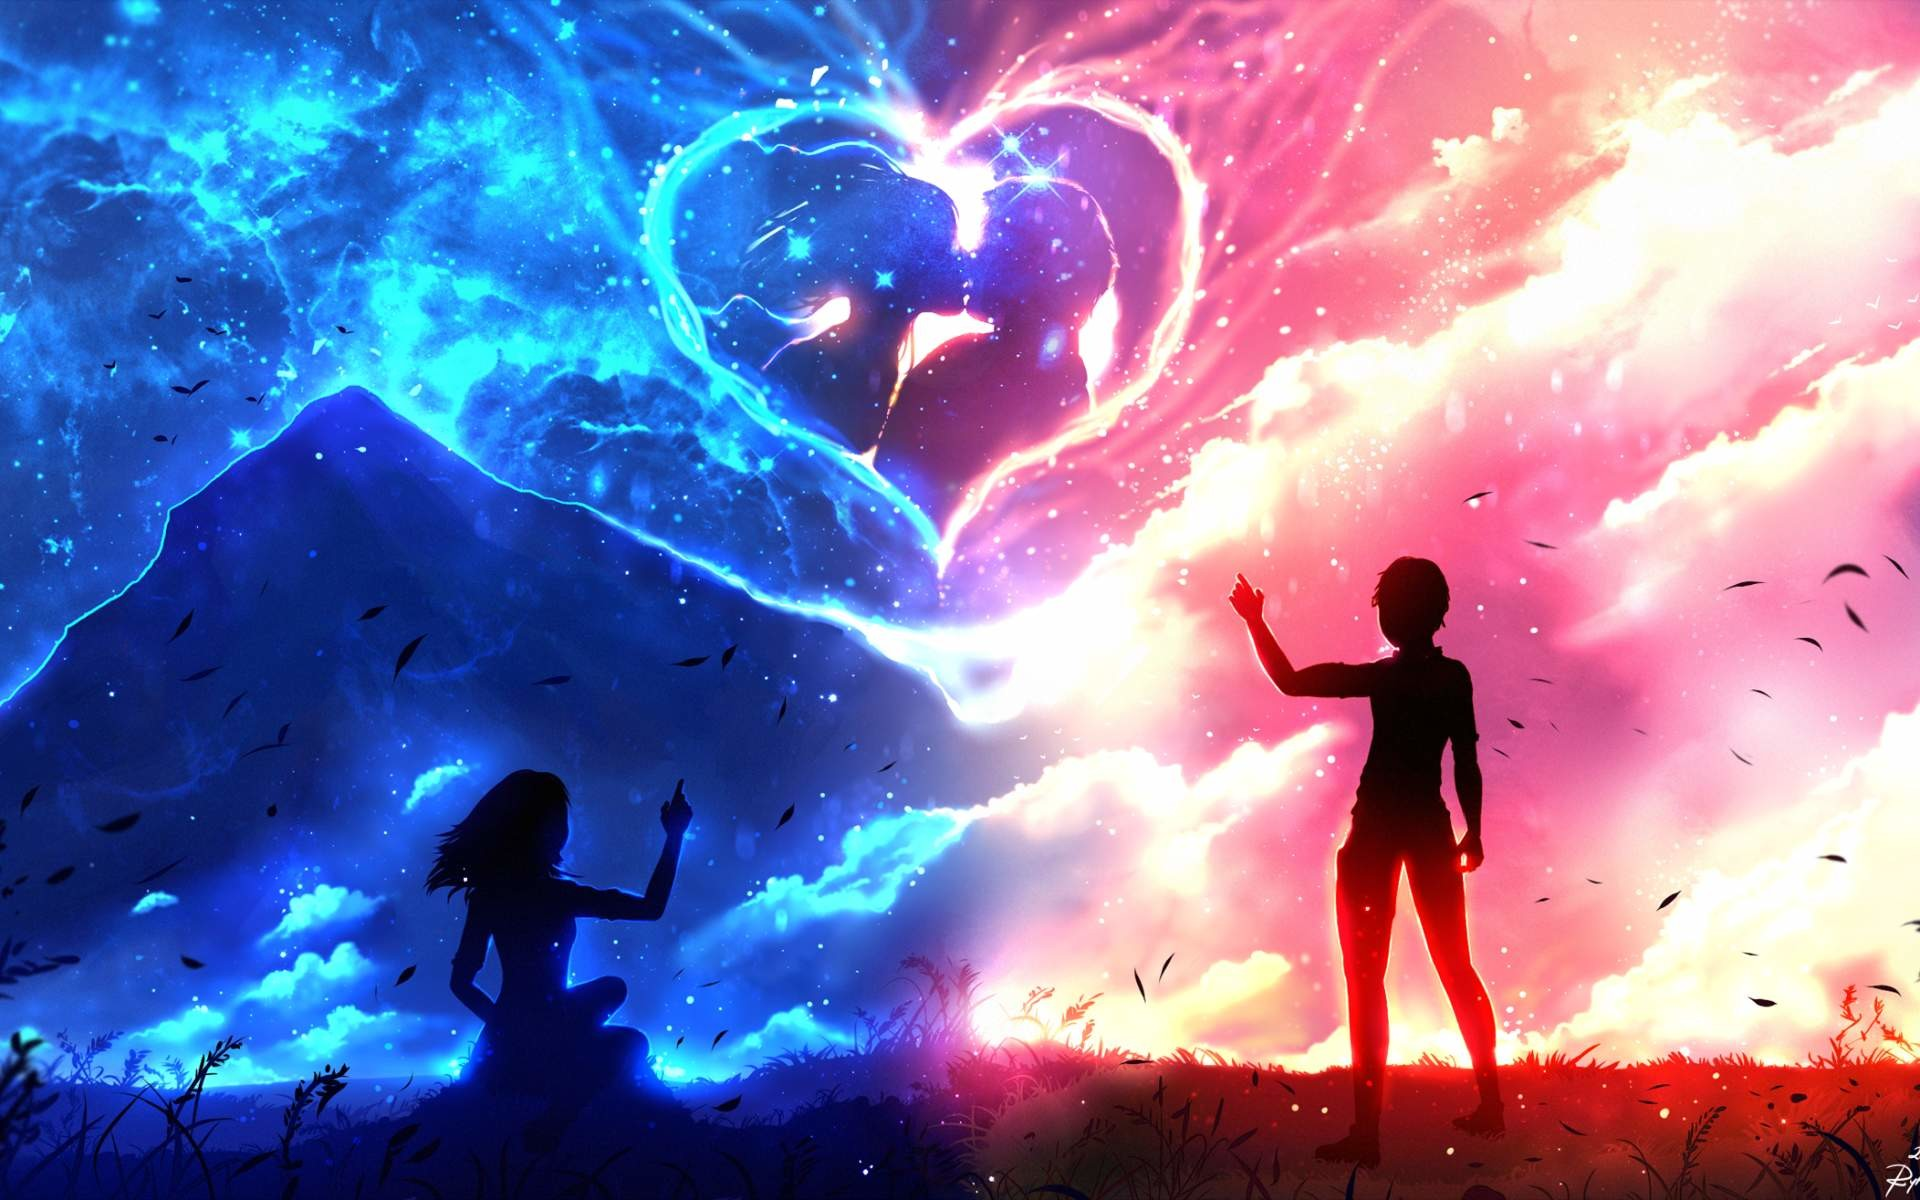 cute Love couple Hd Wallpaper Animated : couples Anime Wallpapers ??